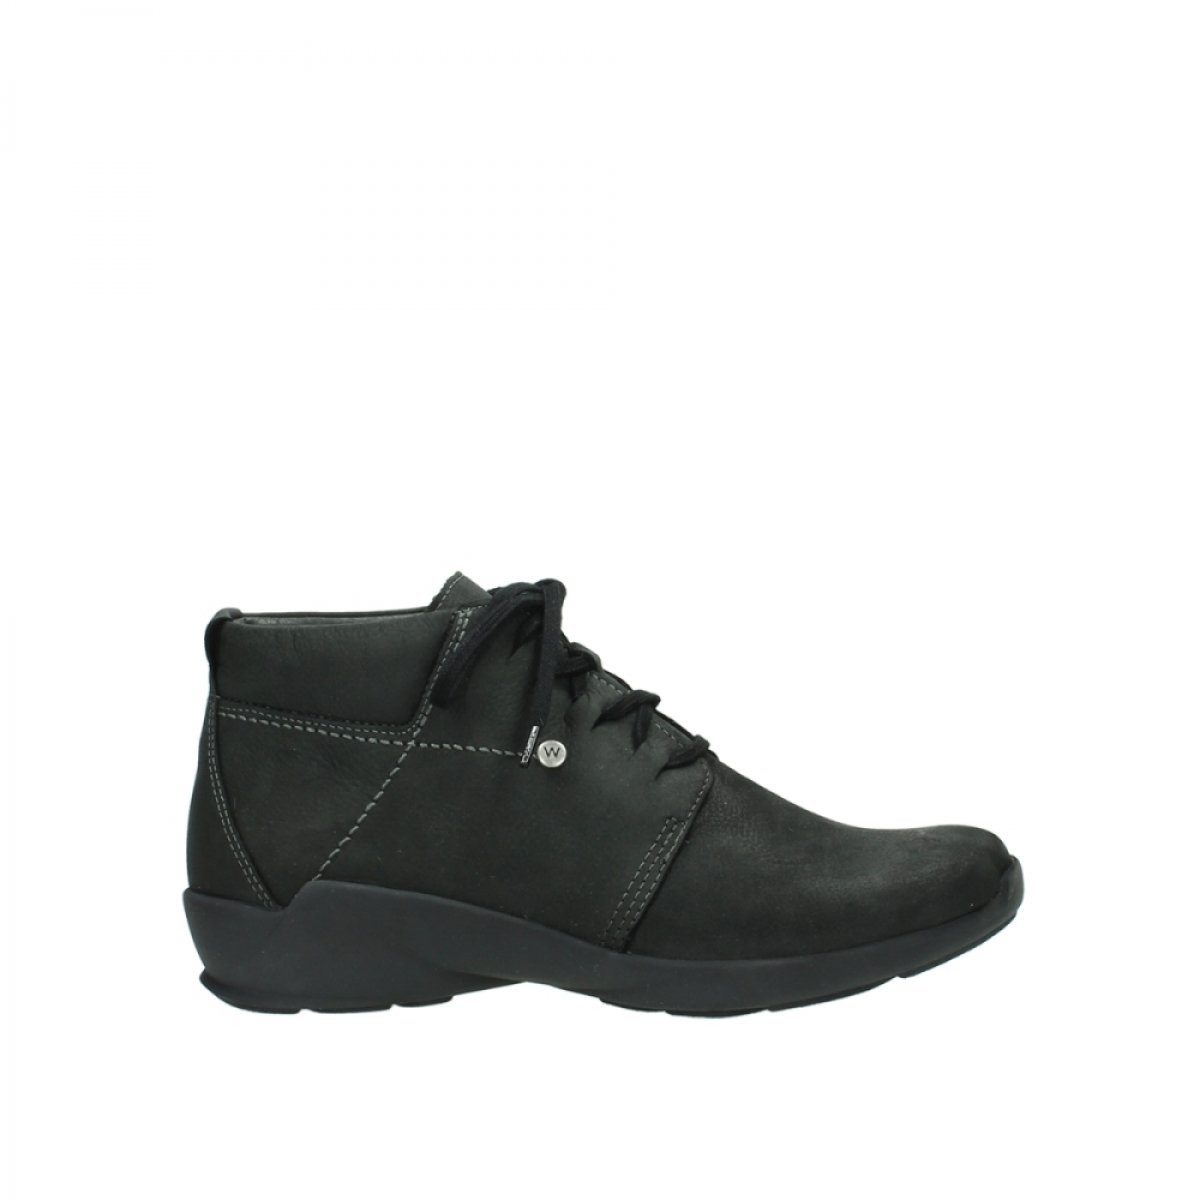 Wolky comodidad Lace Up Zapatos 01571 Jaca 38 EU|10000 Black Nubuck